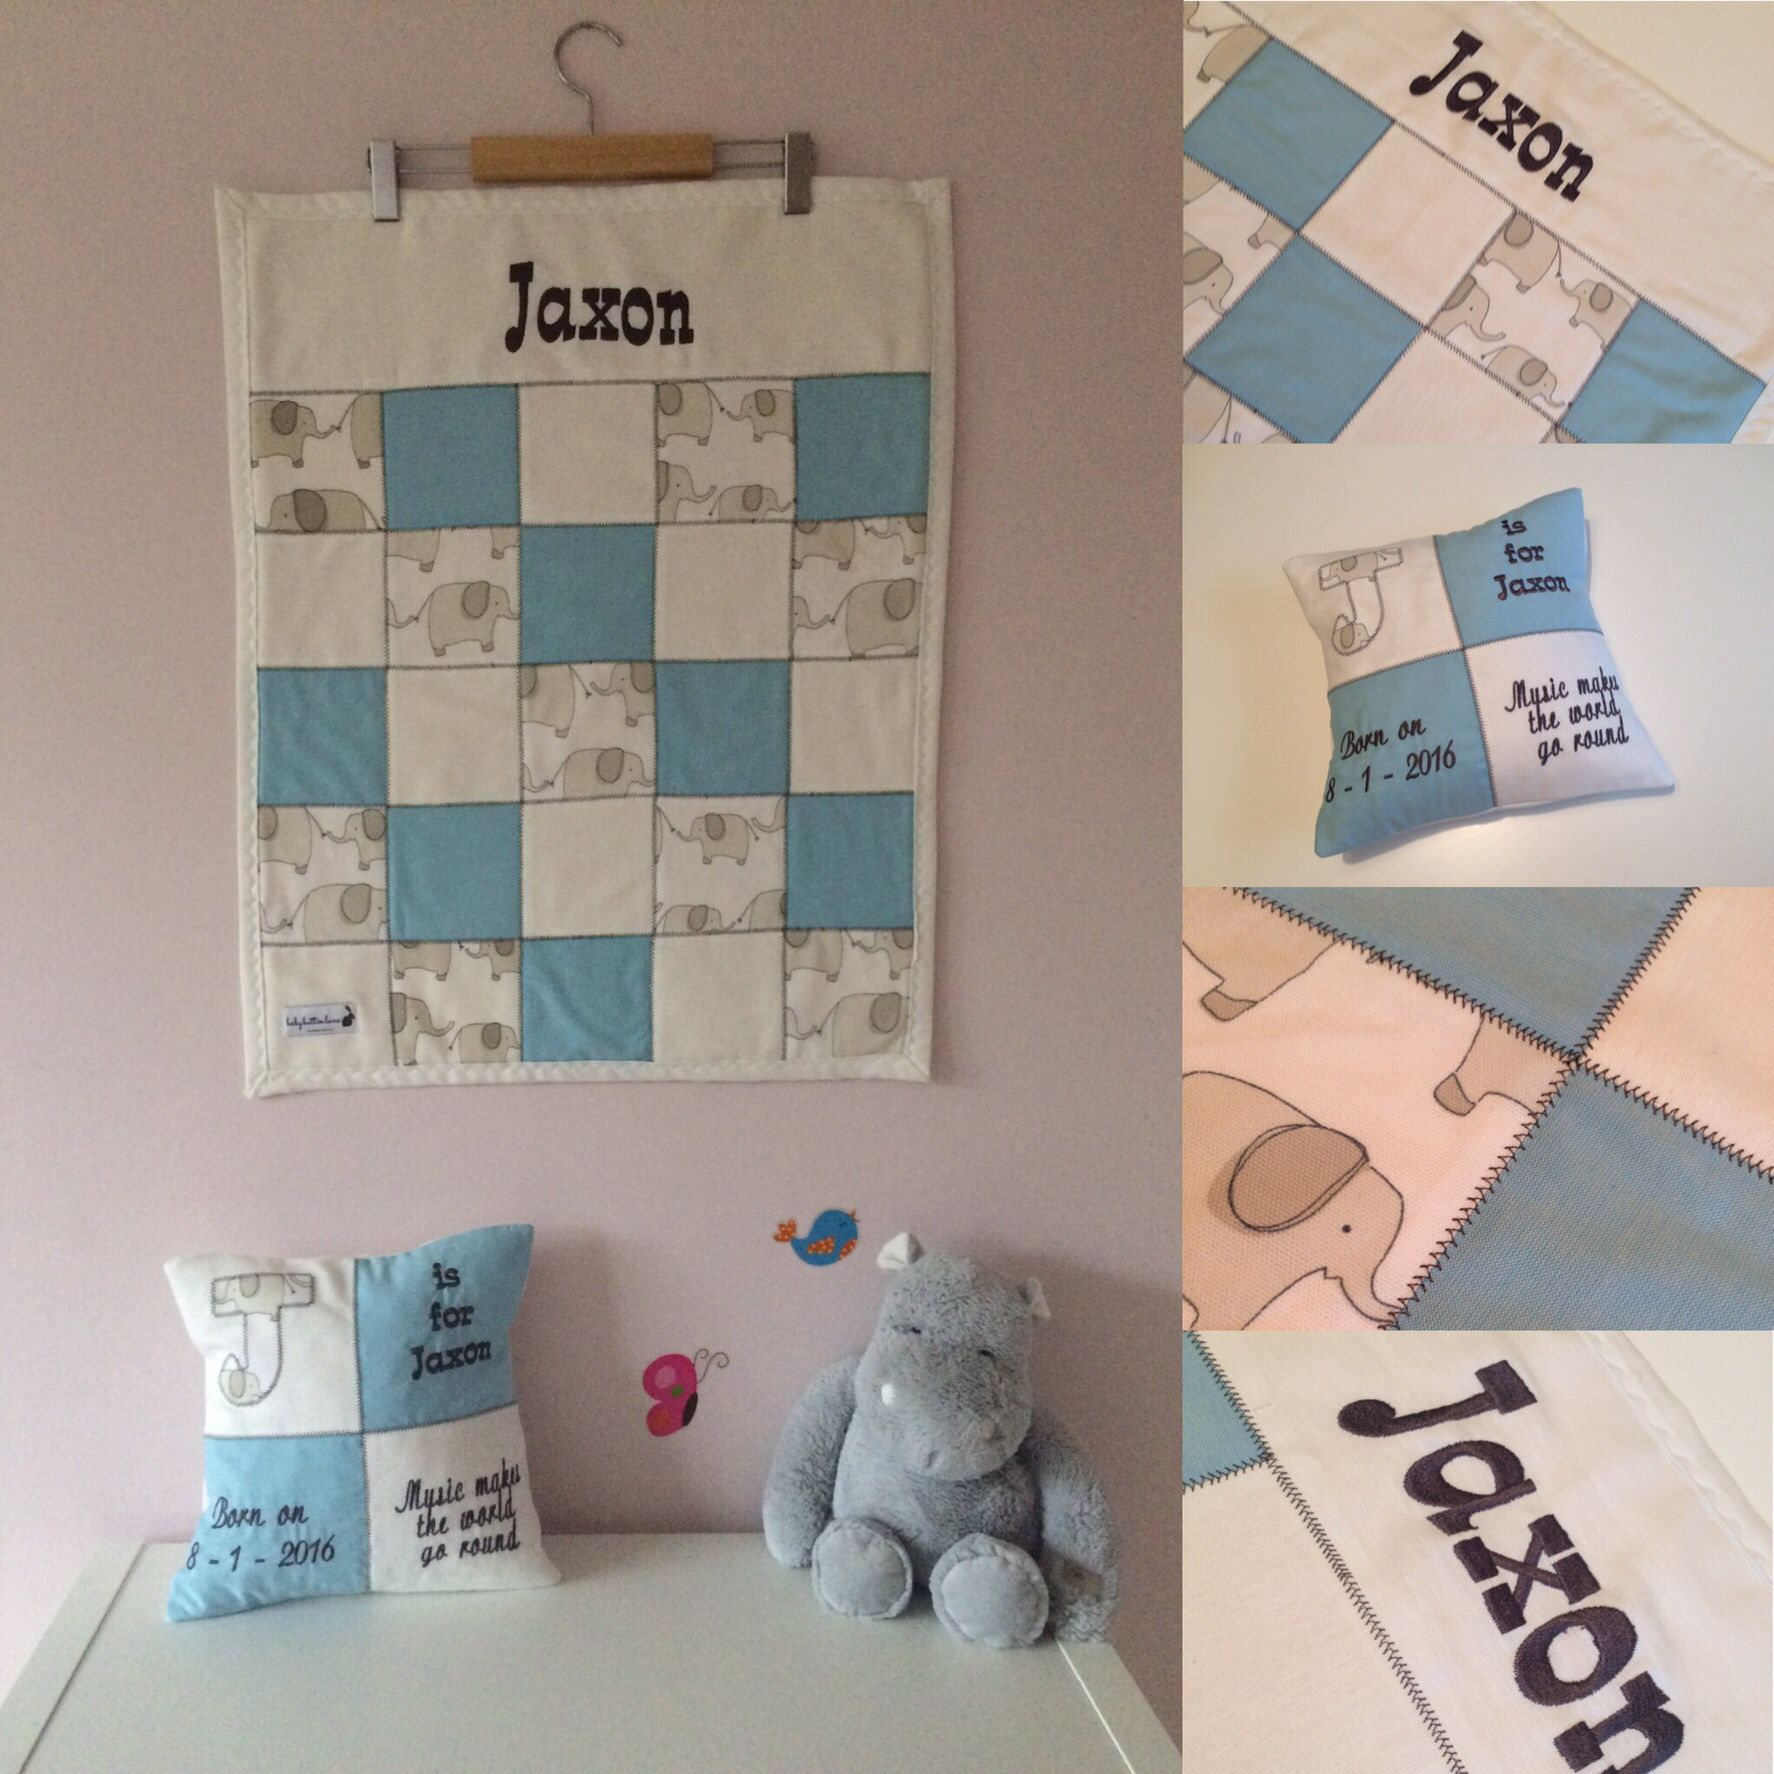 Beautiful Jaxon gift set - perfect gift for a christening, a new born or birthday. You choose your message or leave it to us to create something personal and memorable. #personalised #cushion #giftsets #christening #patchwork #blanket #babyblanket #babyshower